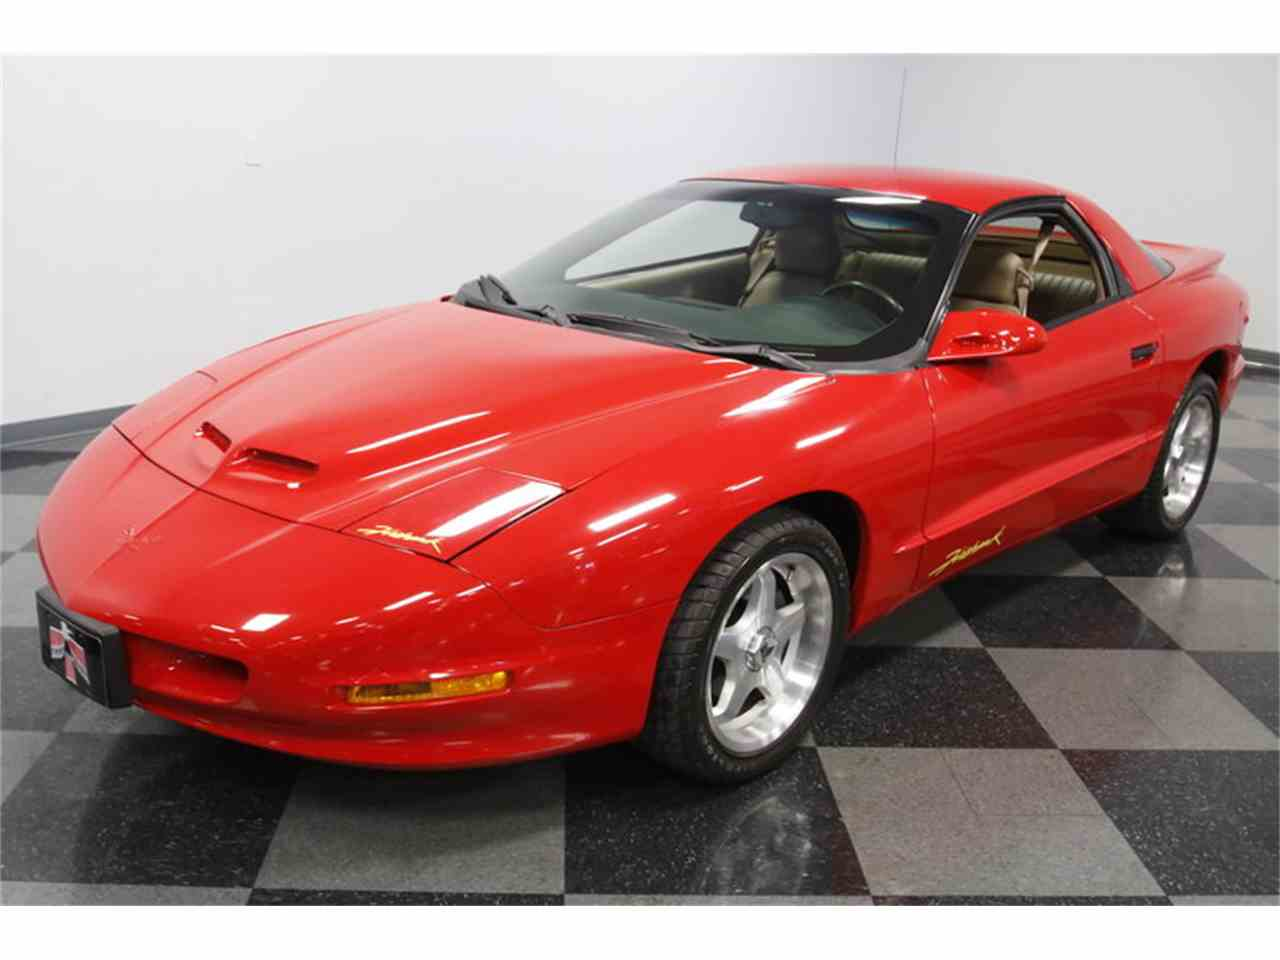 Large Picture of '93 Pontiac Firebird located in North Carolina - $15,995.00 Offered by Streetside Classics - Charlotte - MZJM